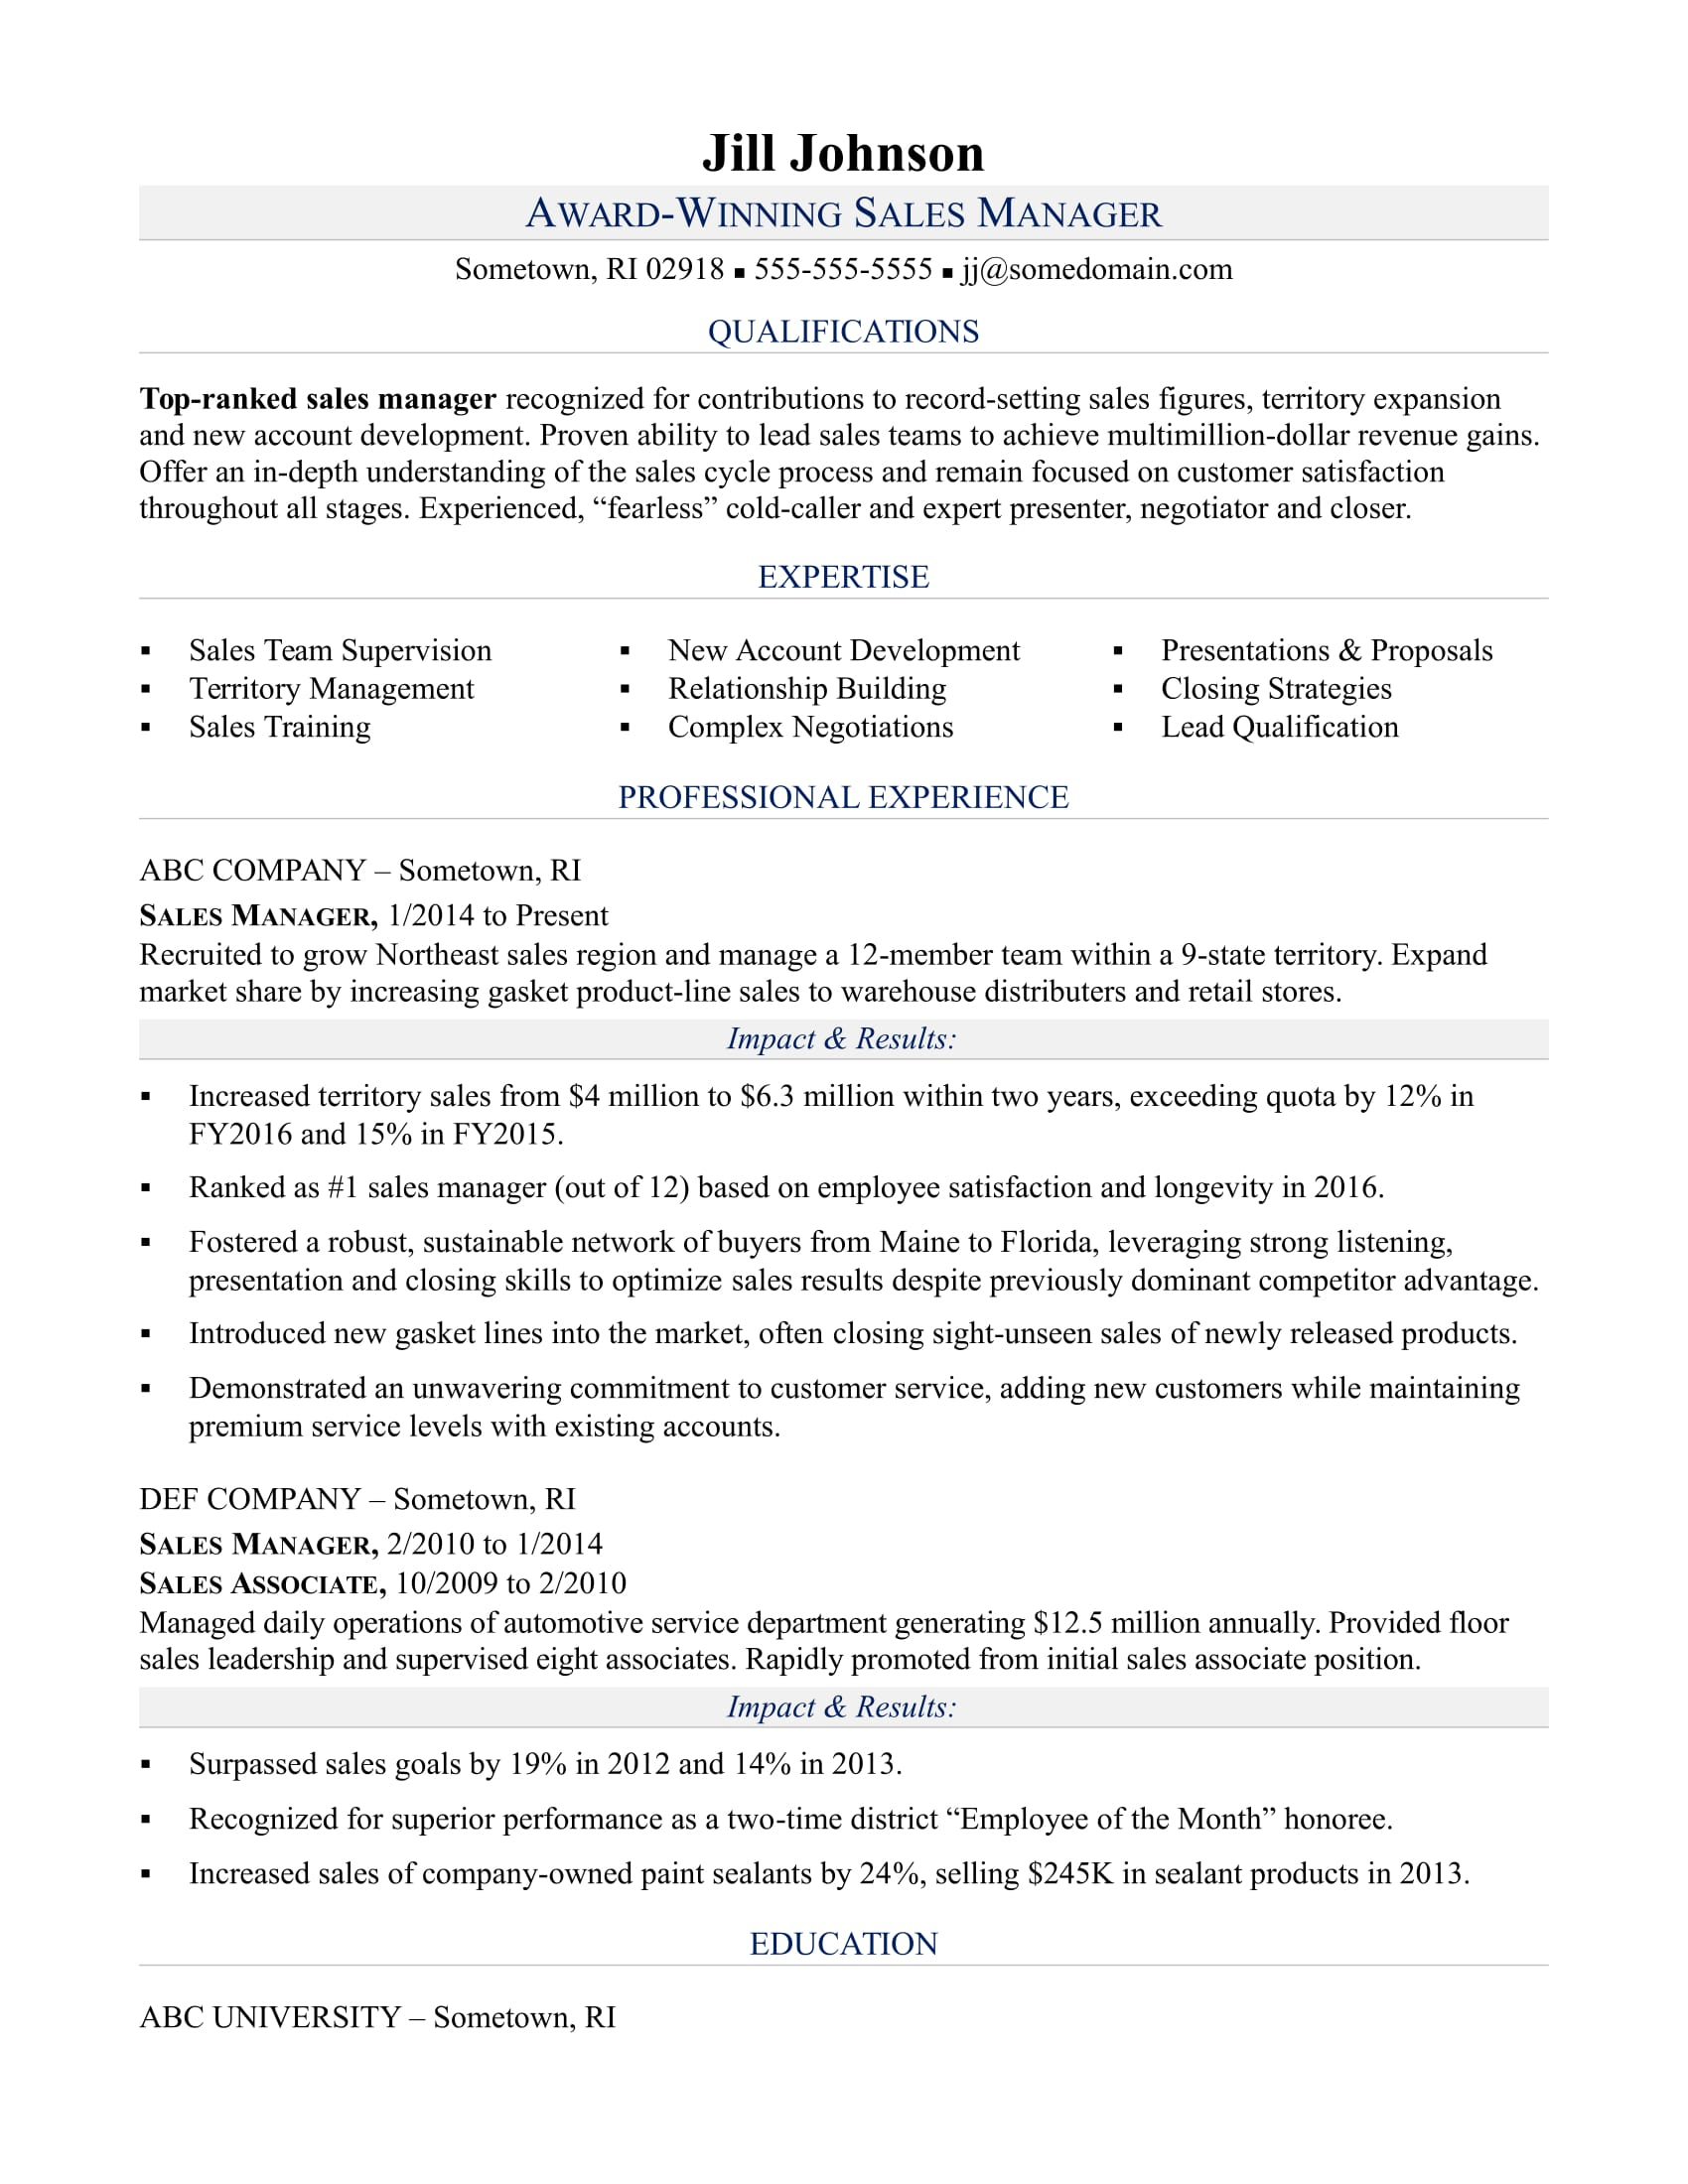 Sample Resume For A Sales Manager  Manager Skills Resume